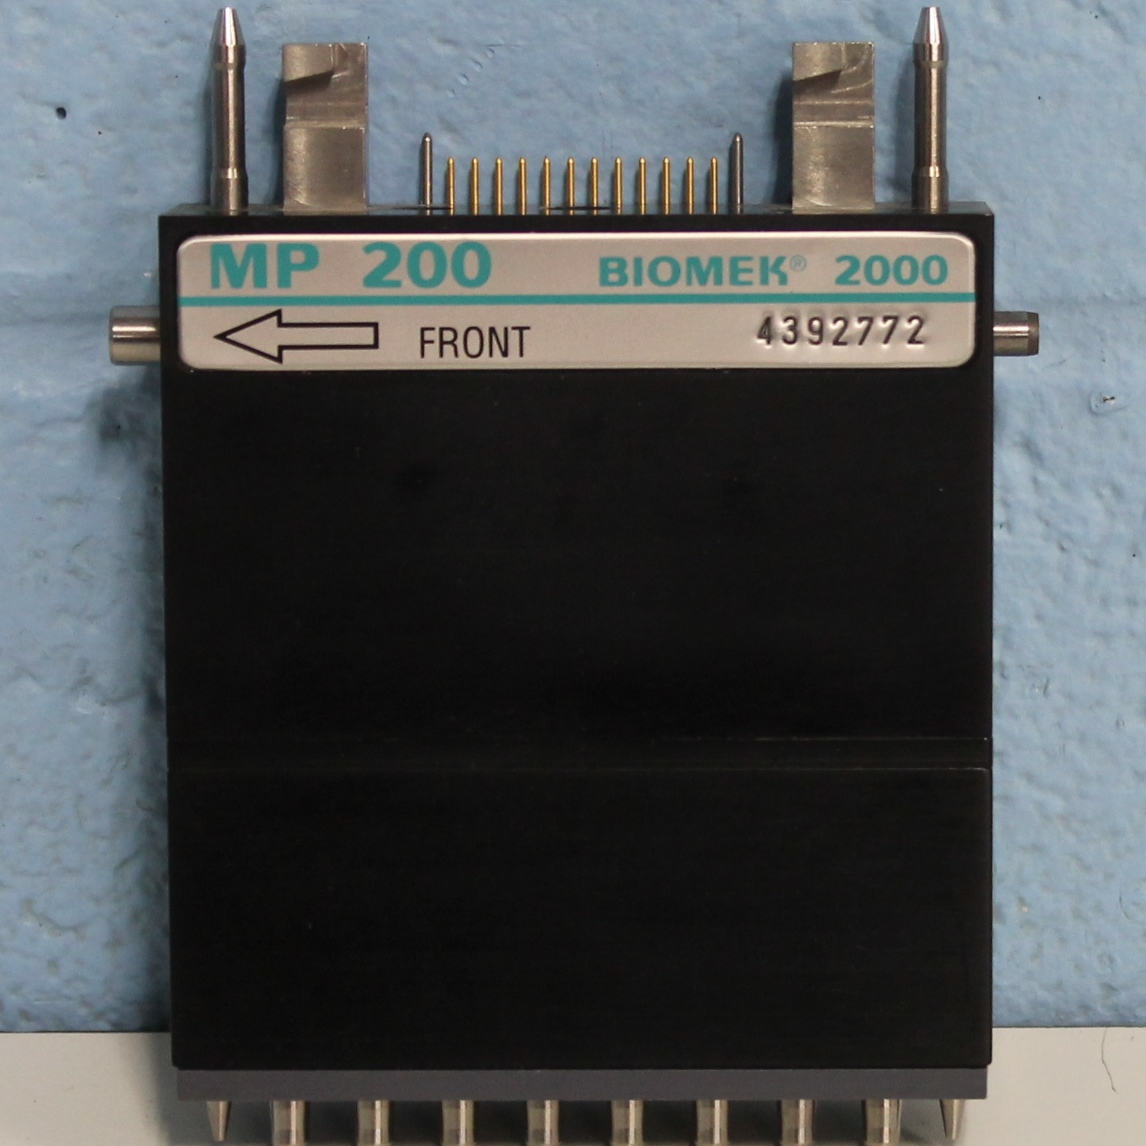 Beckman Coulter MP200 Eight-Tip Tool for the Biomek 2000 Image